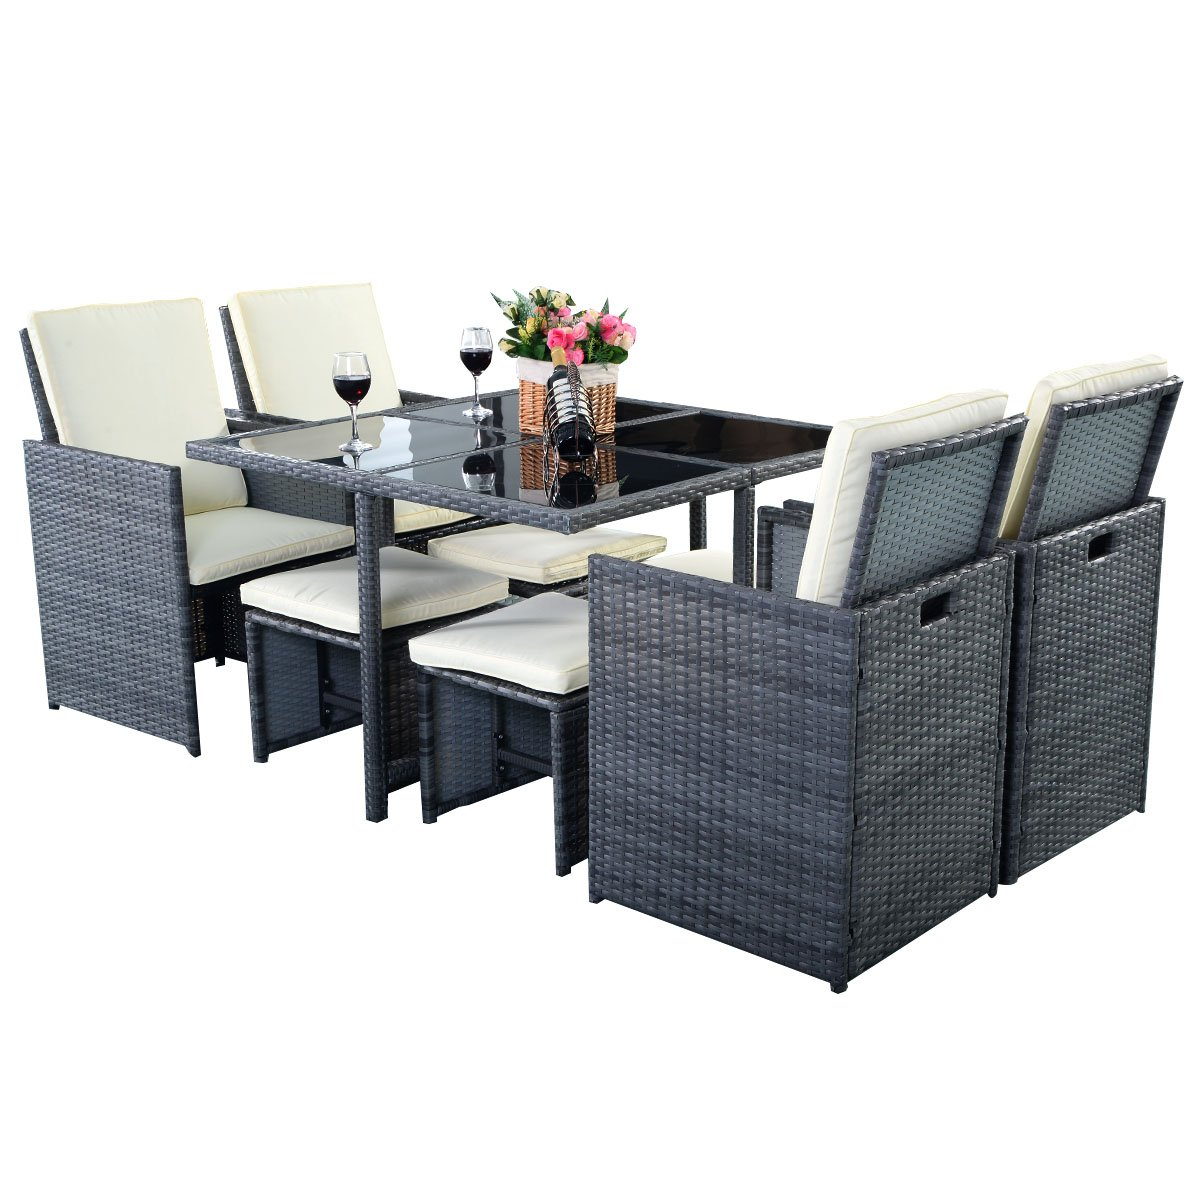 poly rattan gartenm bel sitzgarnitur lounge gartengarnitur rattan 8er set garnitur dunkel grau. Black Bedroom Furniture Sets. Home Design Ideas